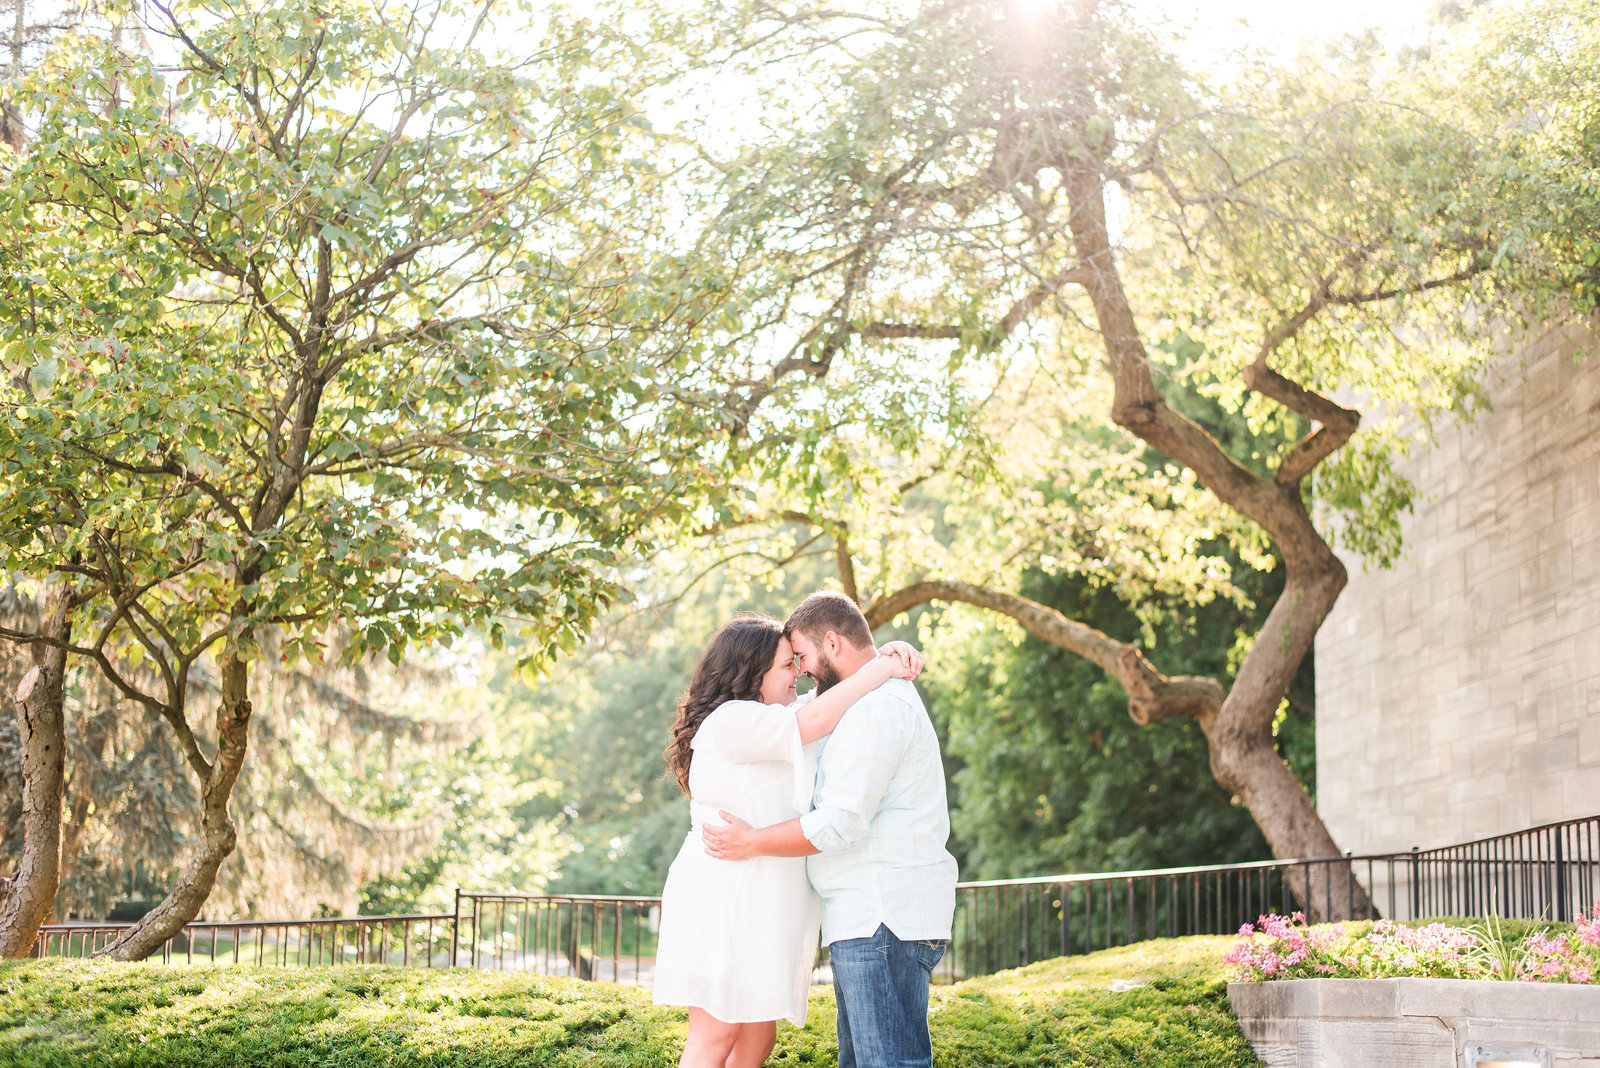 Summer Engagement Session at Holcomb Gardens